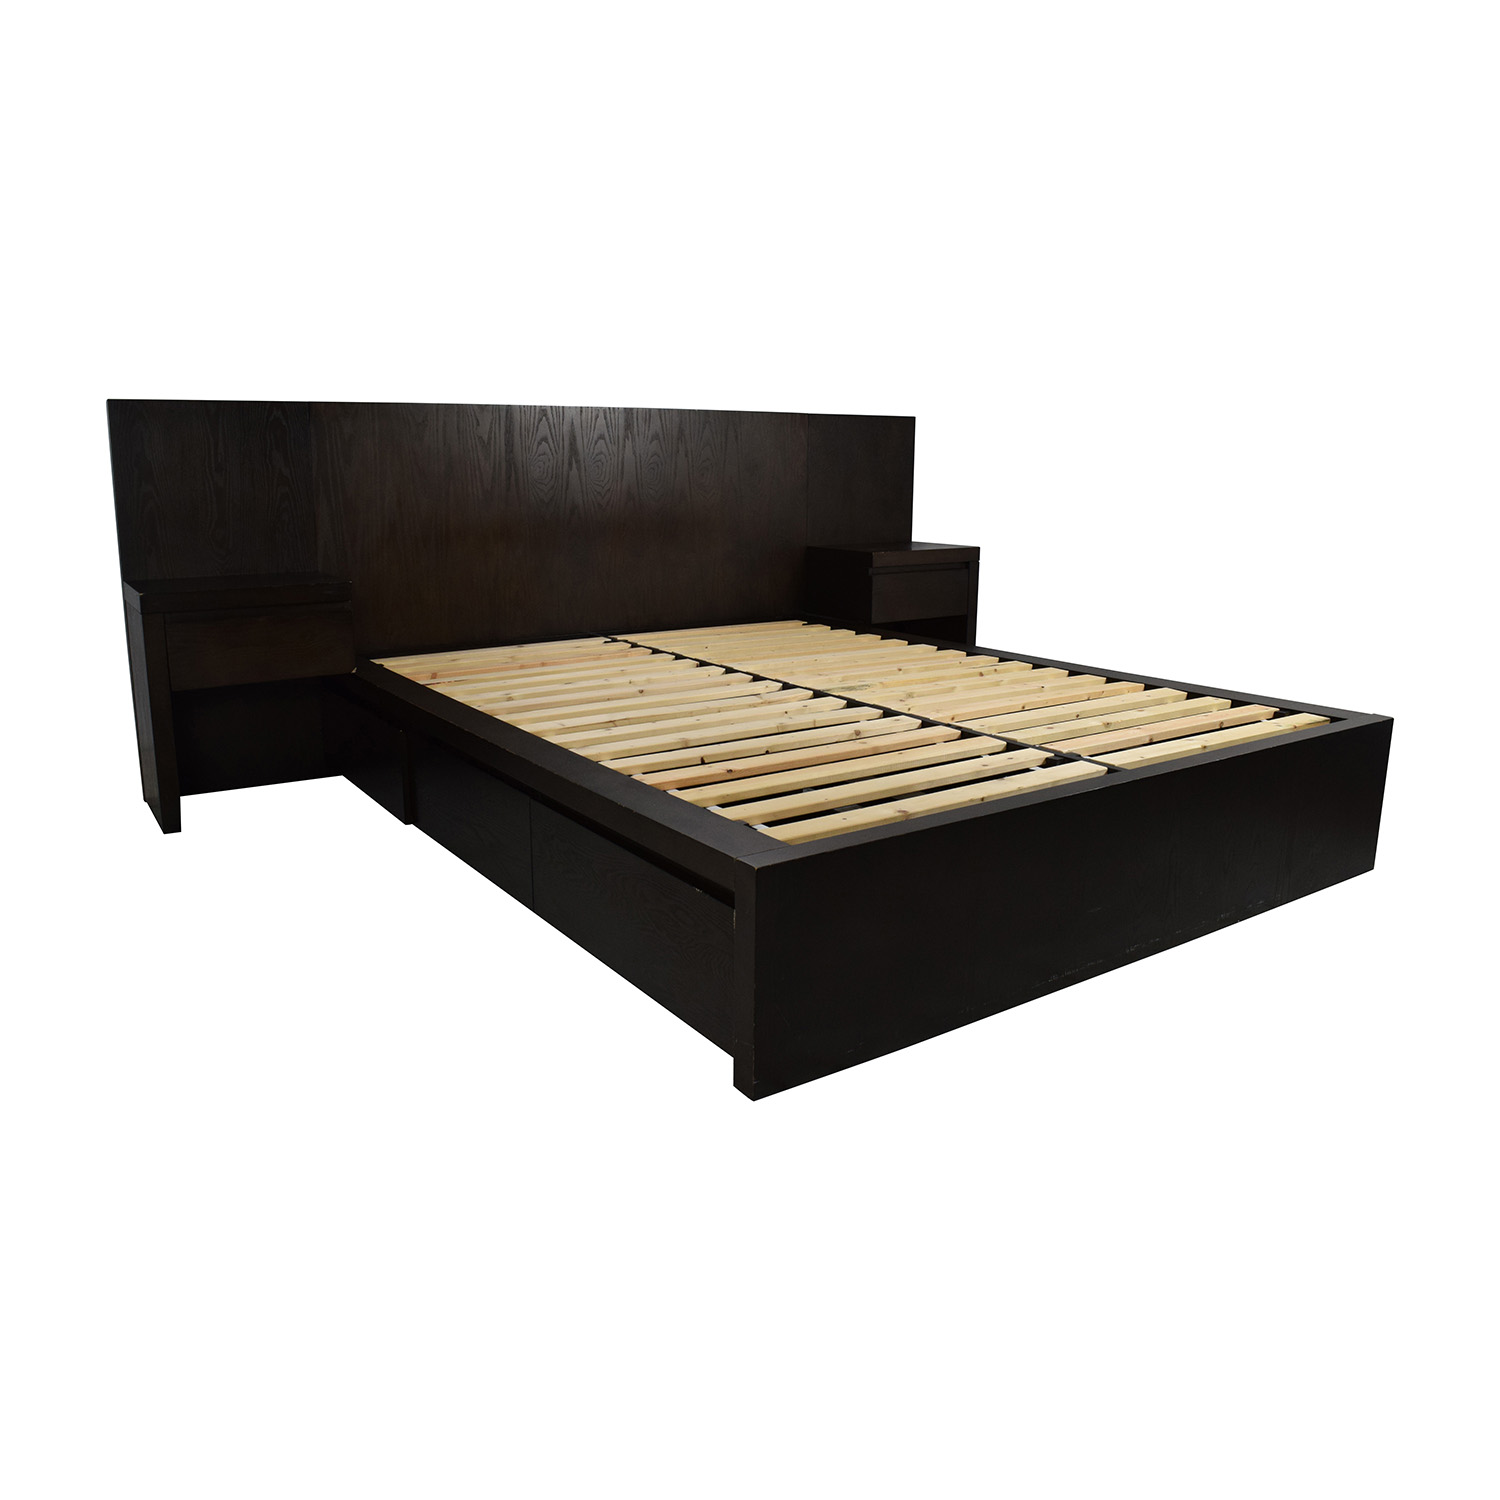 off  west elm west elm queen size storage platform bed frame  -  west elm west elm queen size storage platform bed frame discount